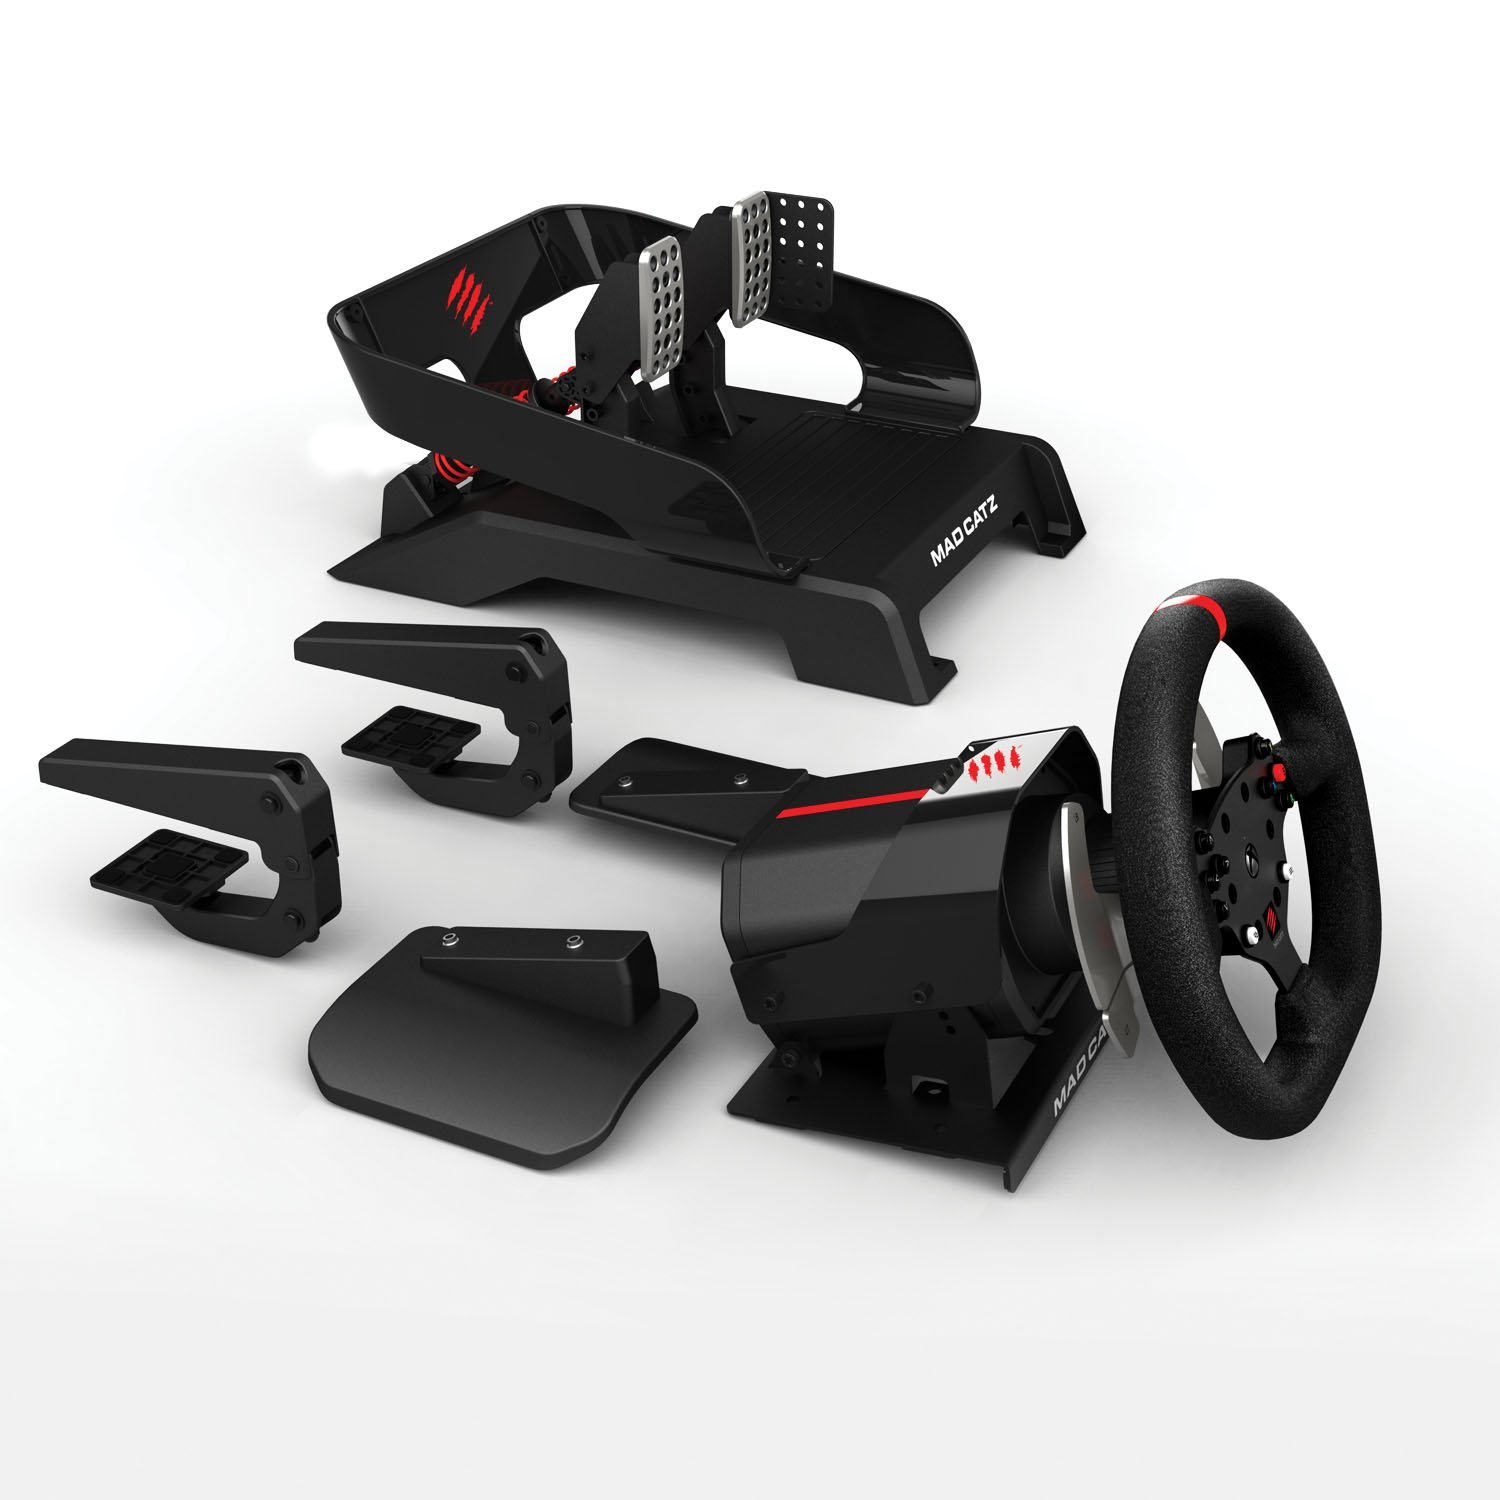 Best Xbox e steering wheels and other racing accessories for